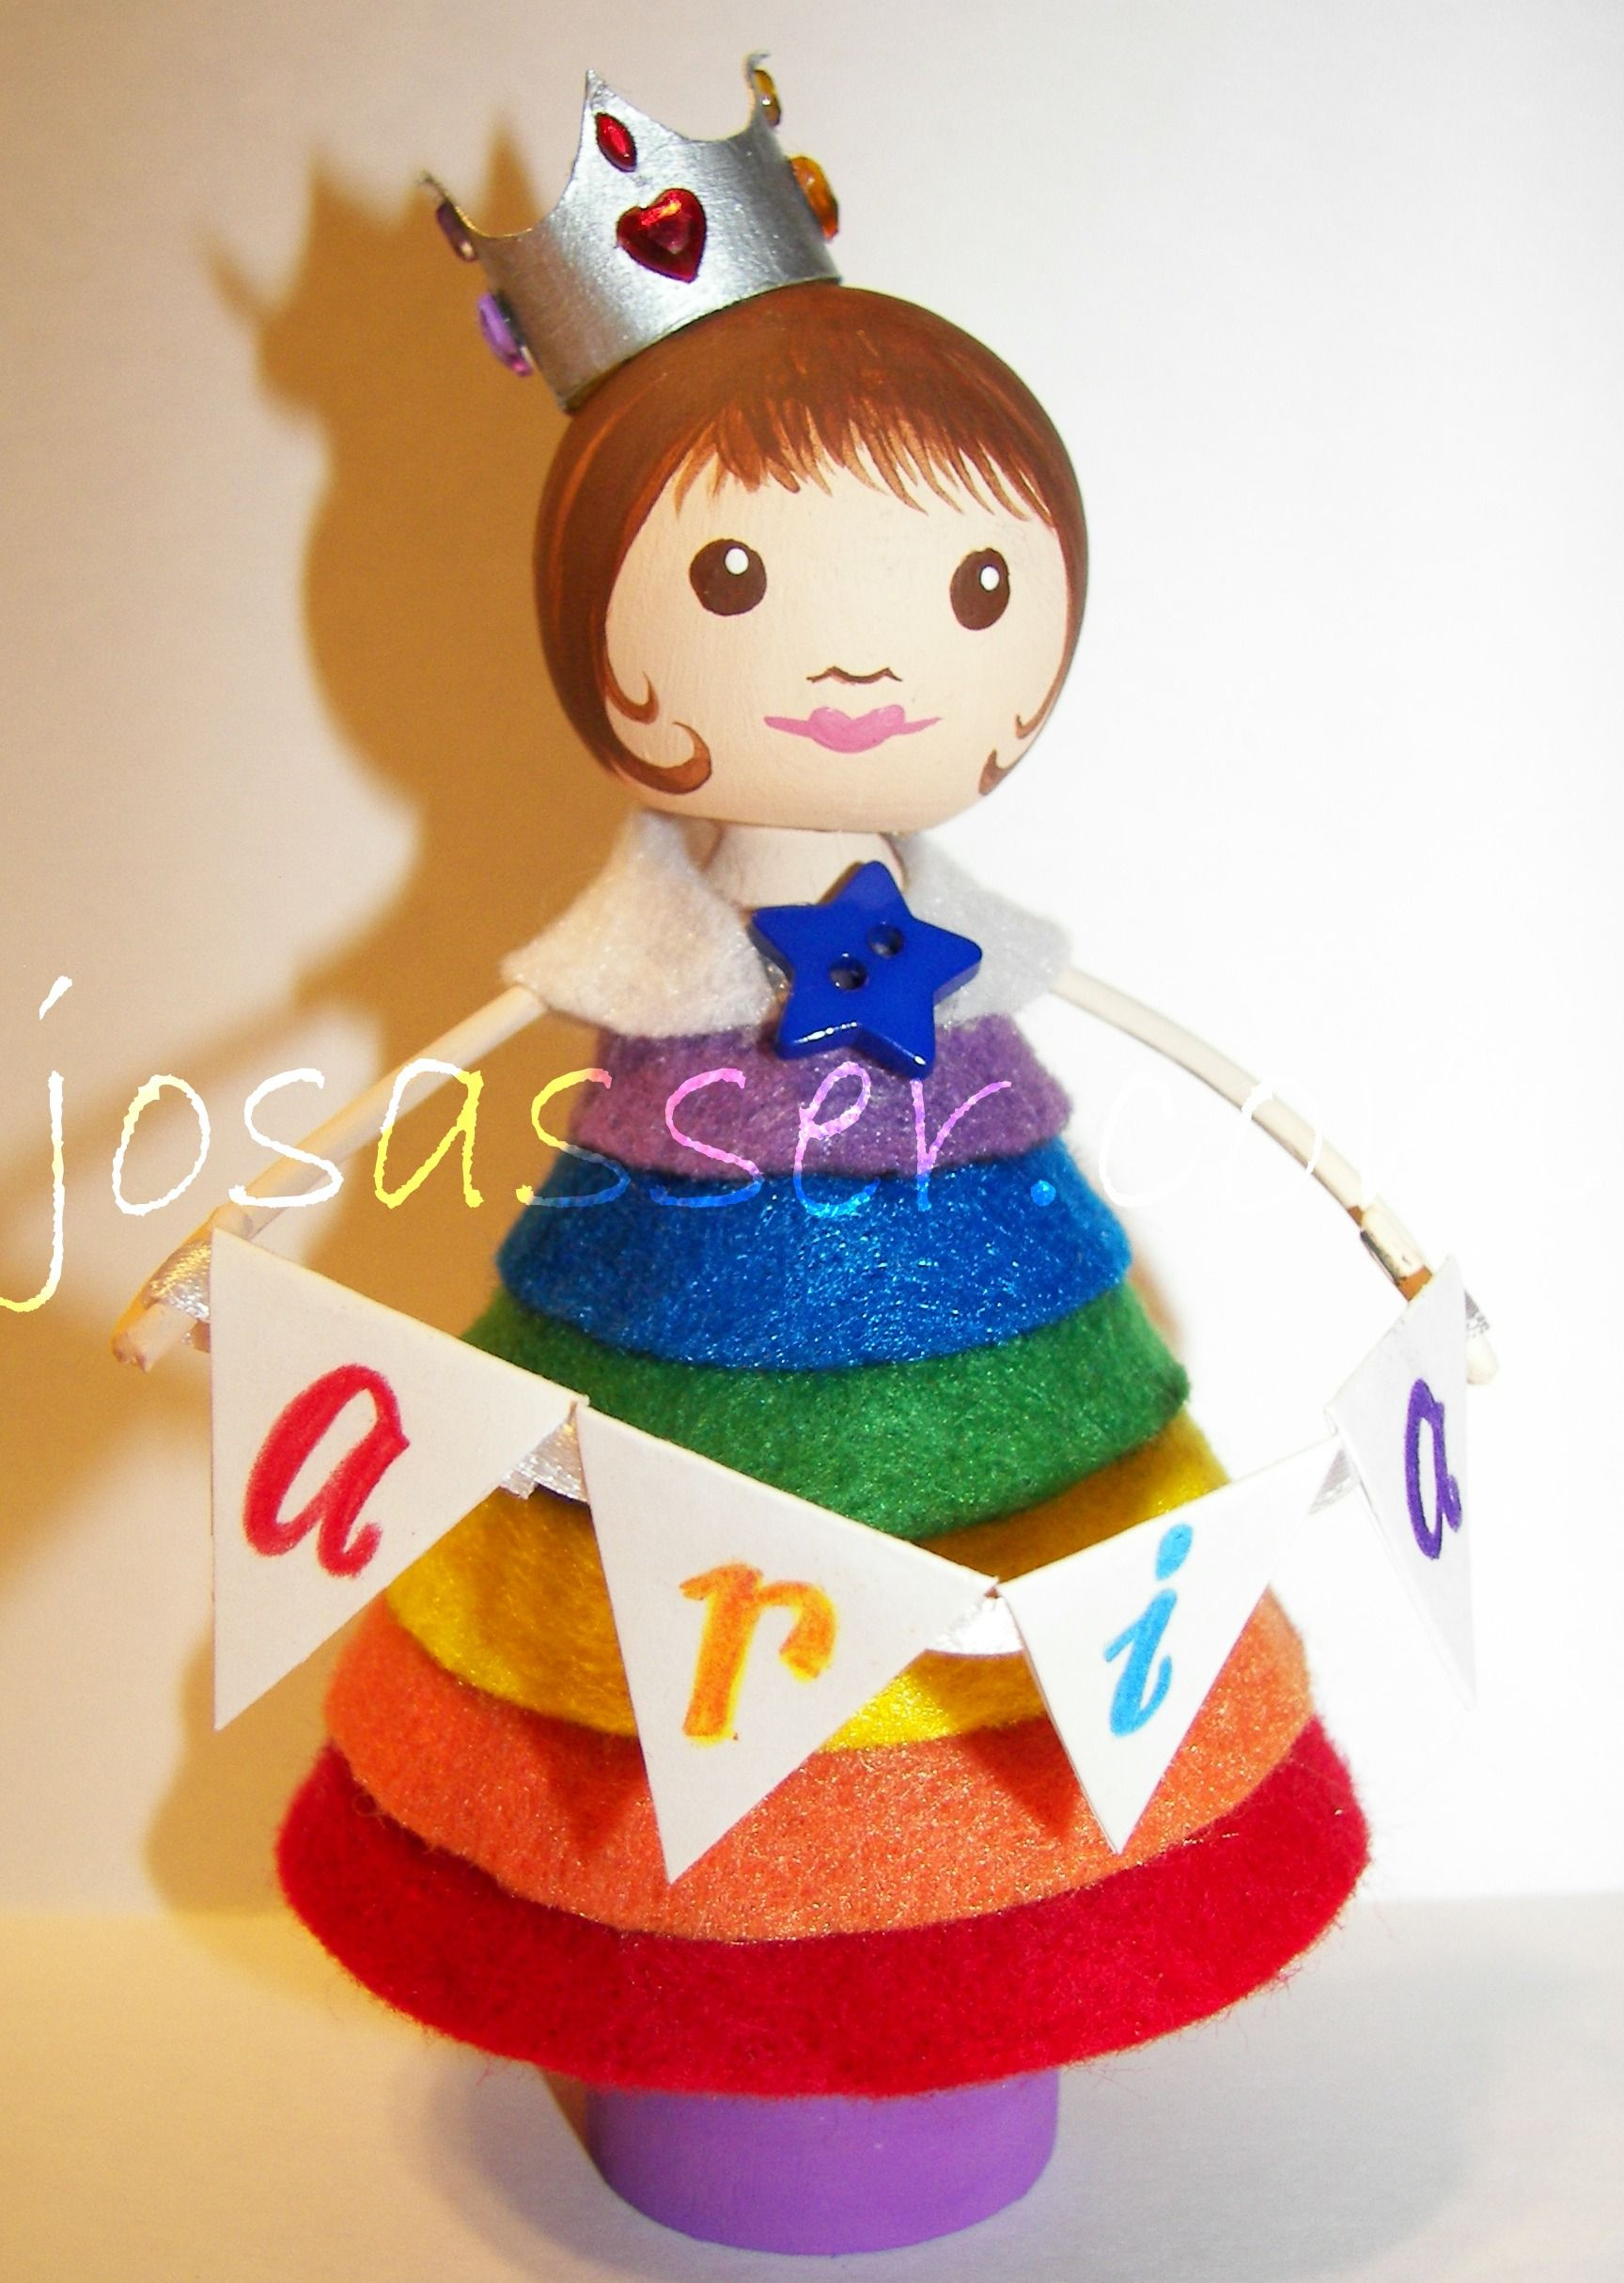 rainbow clothespin doll, inspired by http://pinterest.com/pin/130393351681021795/